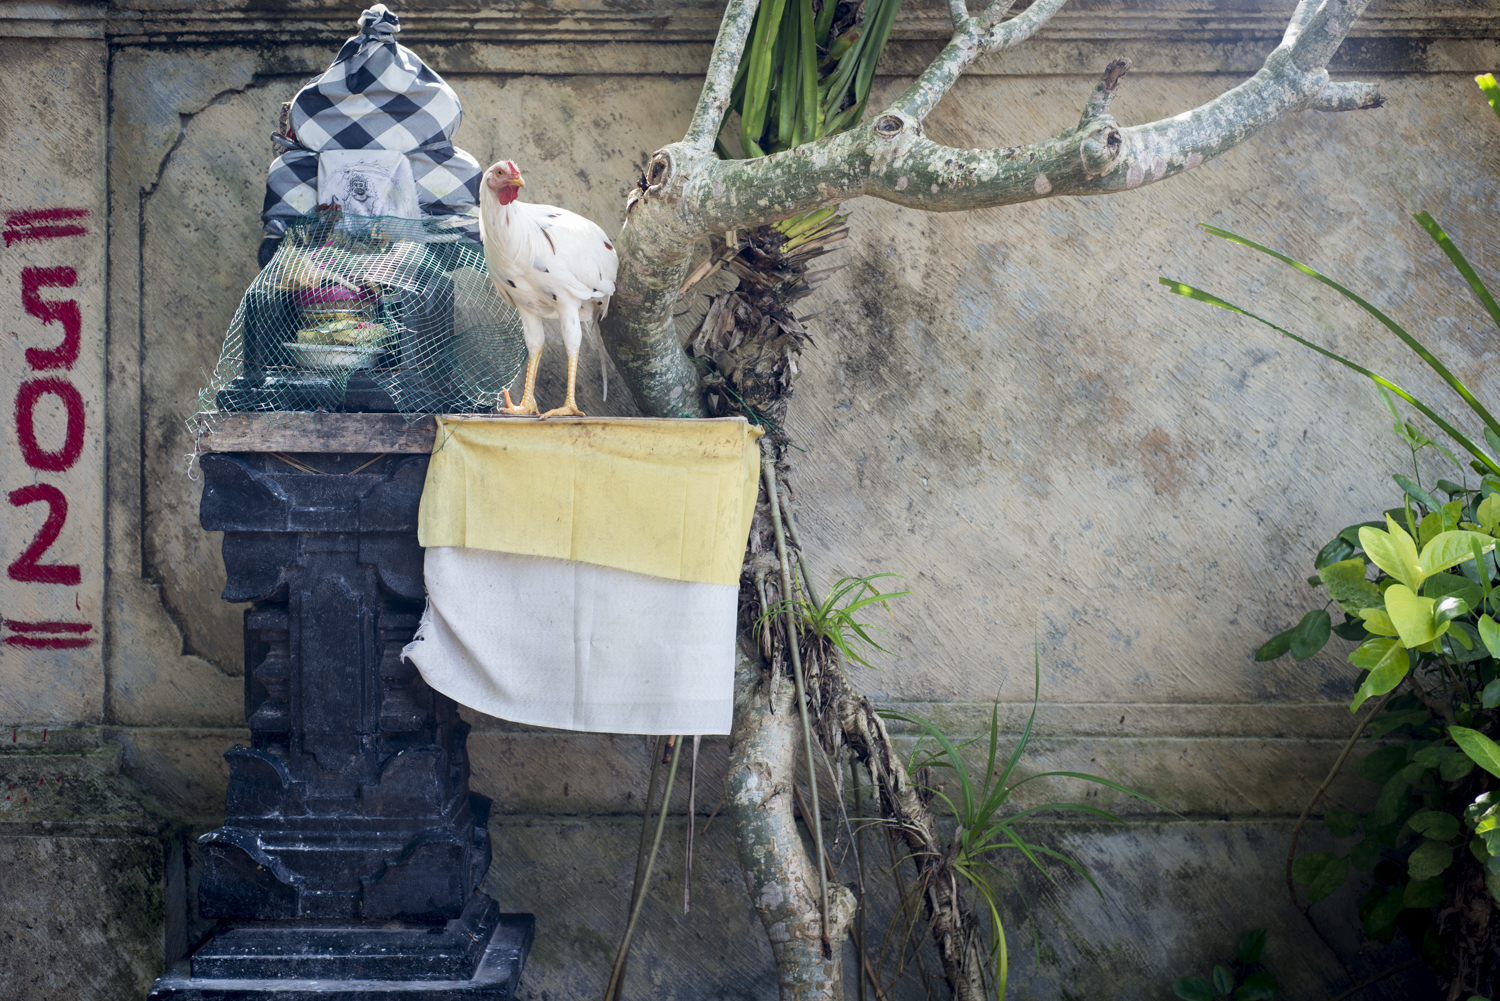 Love the rural side of Bali.